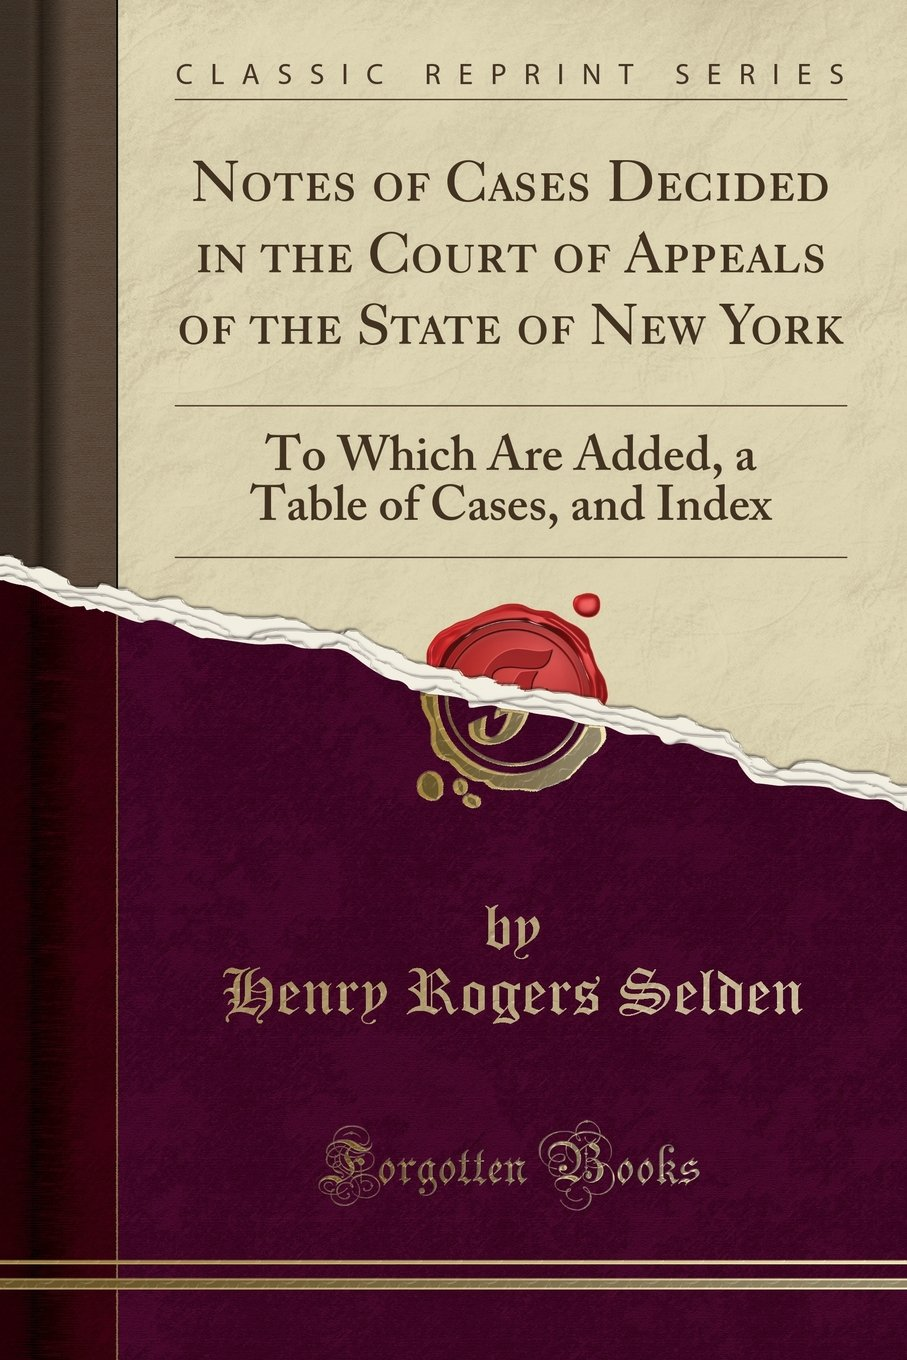 Download Notes of Cases Decided in the Court of Appeals of the State of New York: To Which Are Added, a Table of Cases, and Index (Classic Reprint) PDF